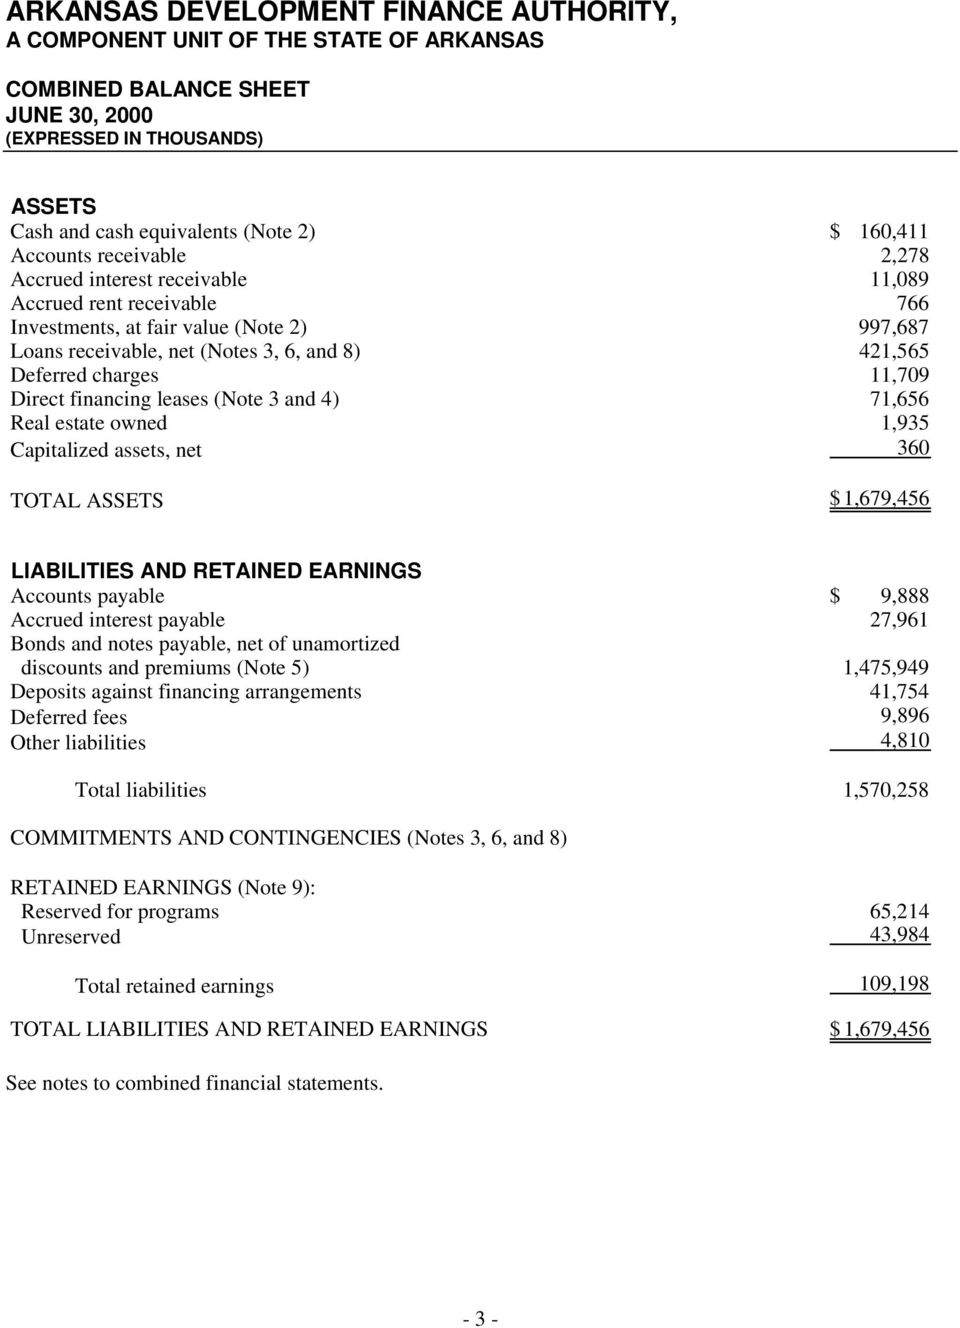 11,709 Direct financing leases (Note 3 and 4) 71,656 Real estate owned 1,935 Capitalized assets, net 360 TOTAL ASSETS $ 1,679,456 LIABILITIES AND RETAINED EARNINGS Accounts payable $ 9,888 Accrued